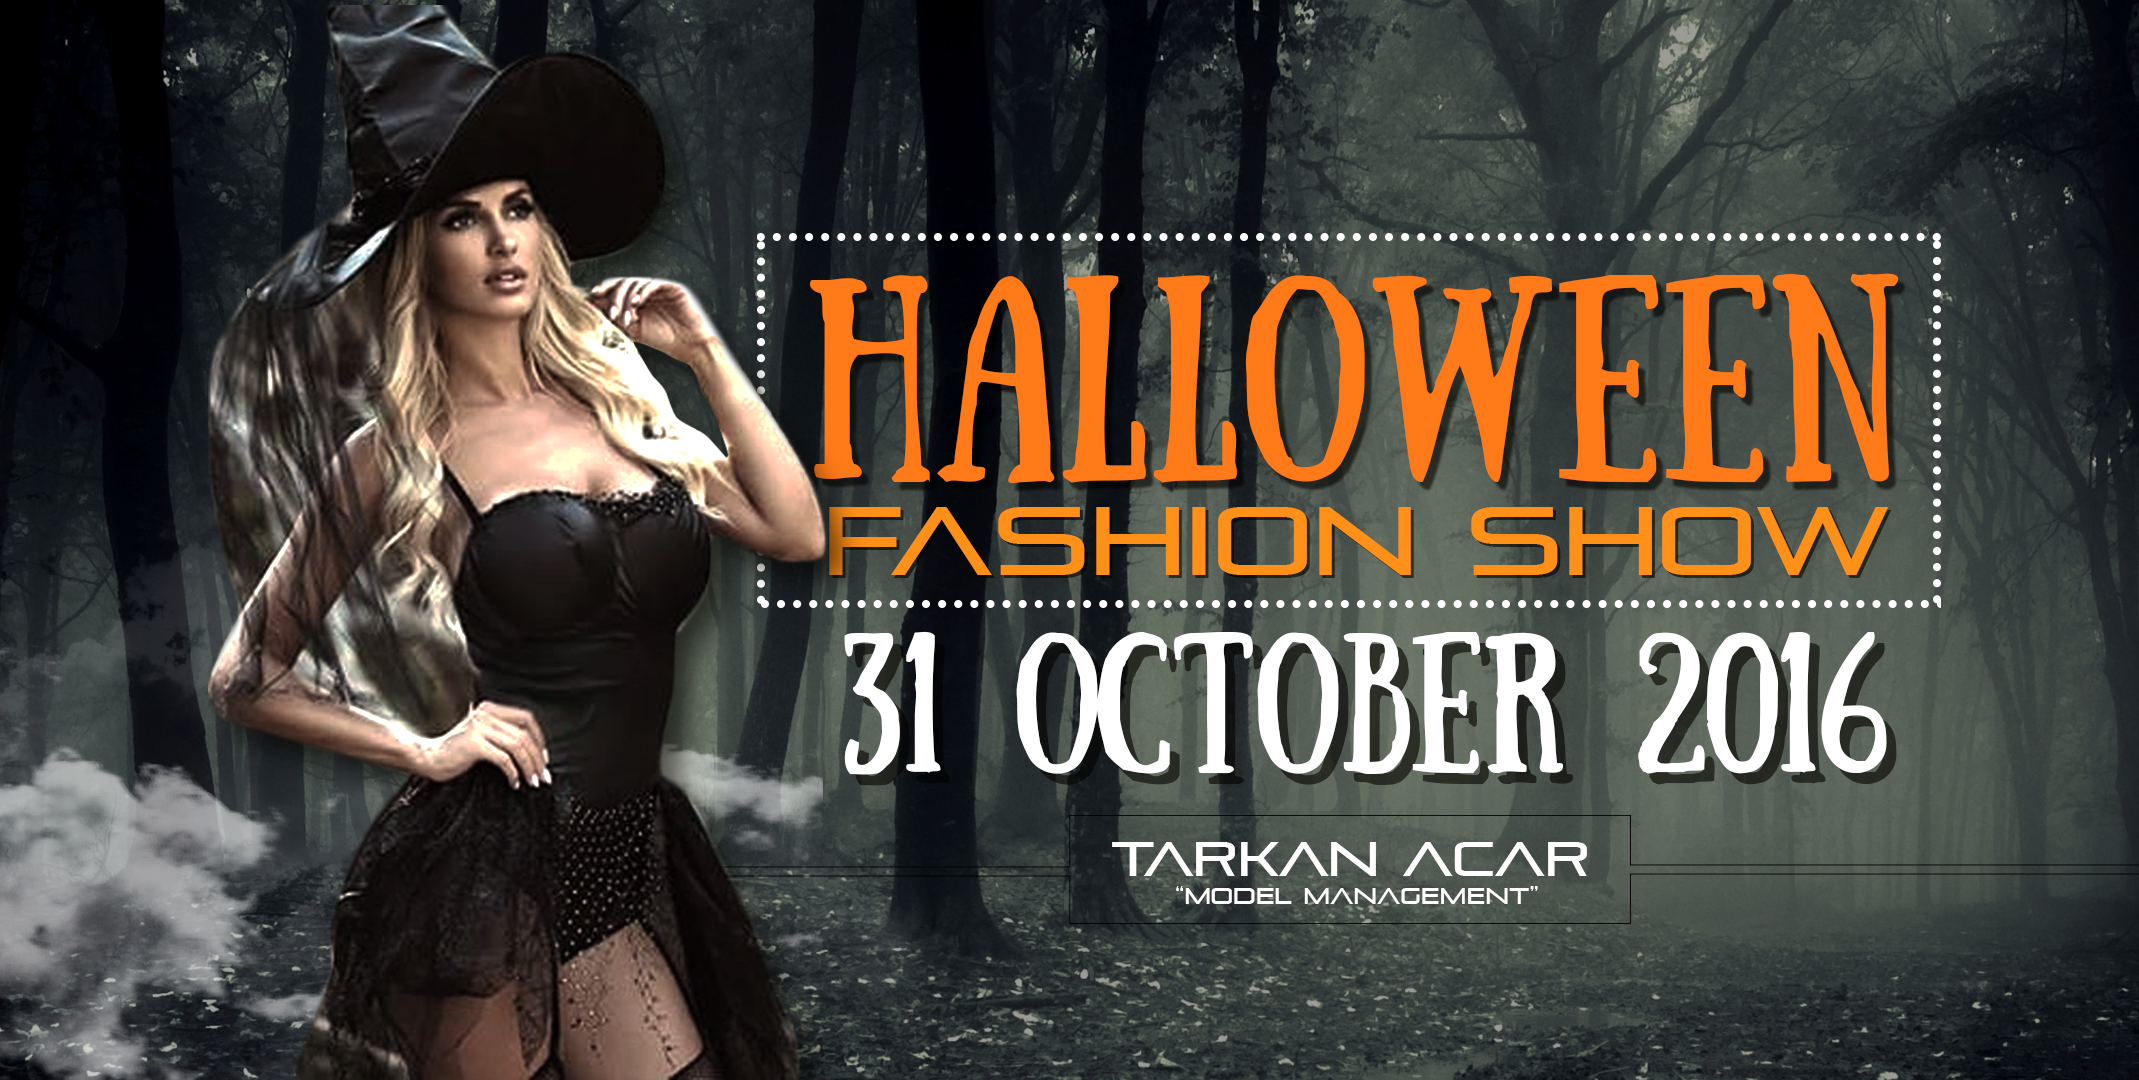 Halloween Fashion Show 2016